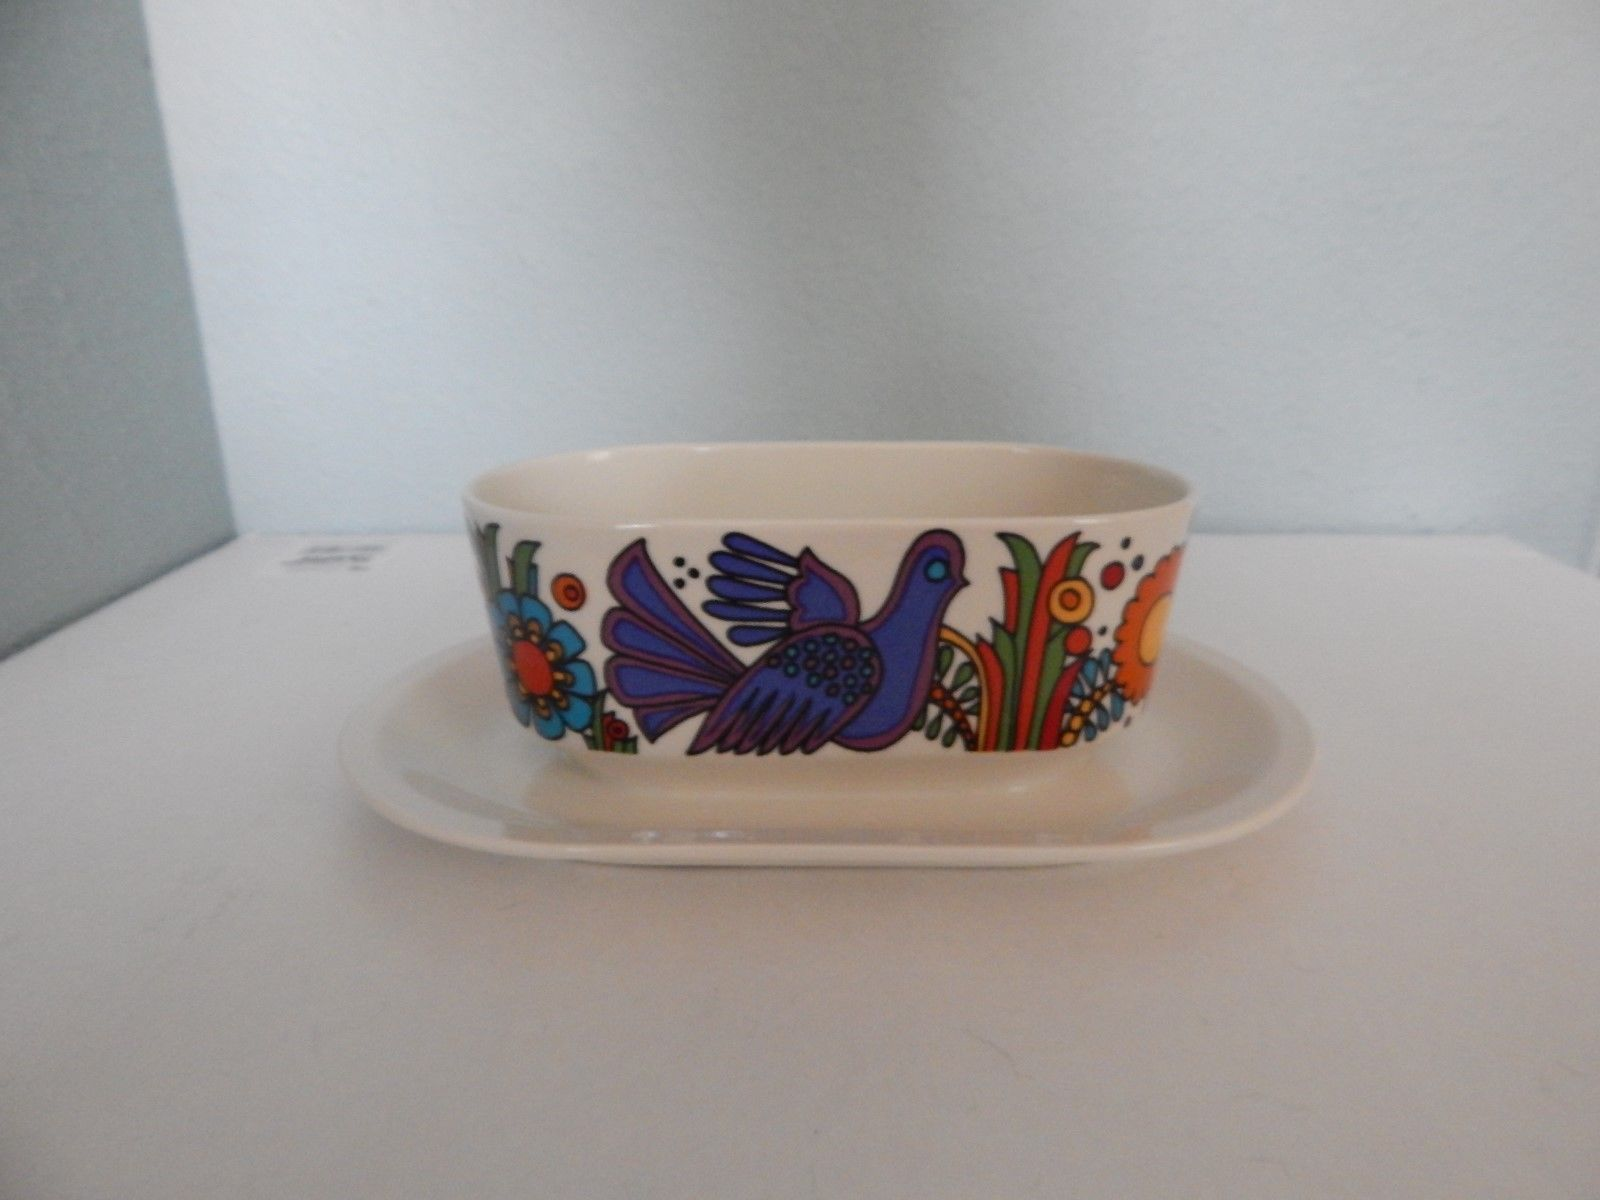 Villeroy & Boch Acapulco Gravy Boat Bowl with Attached Plate